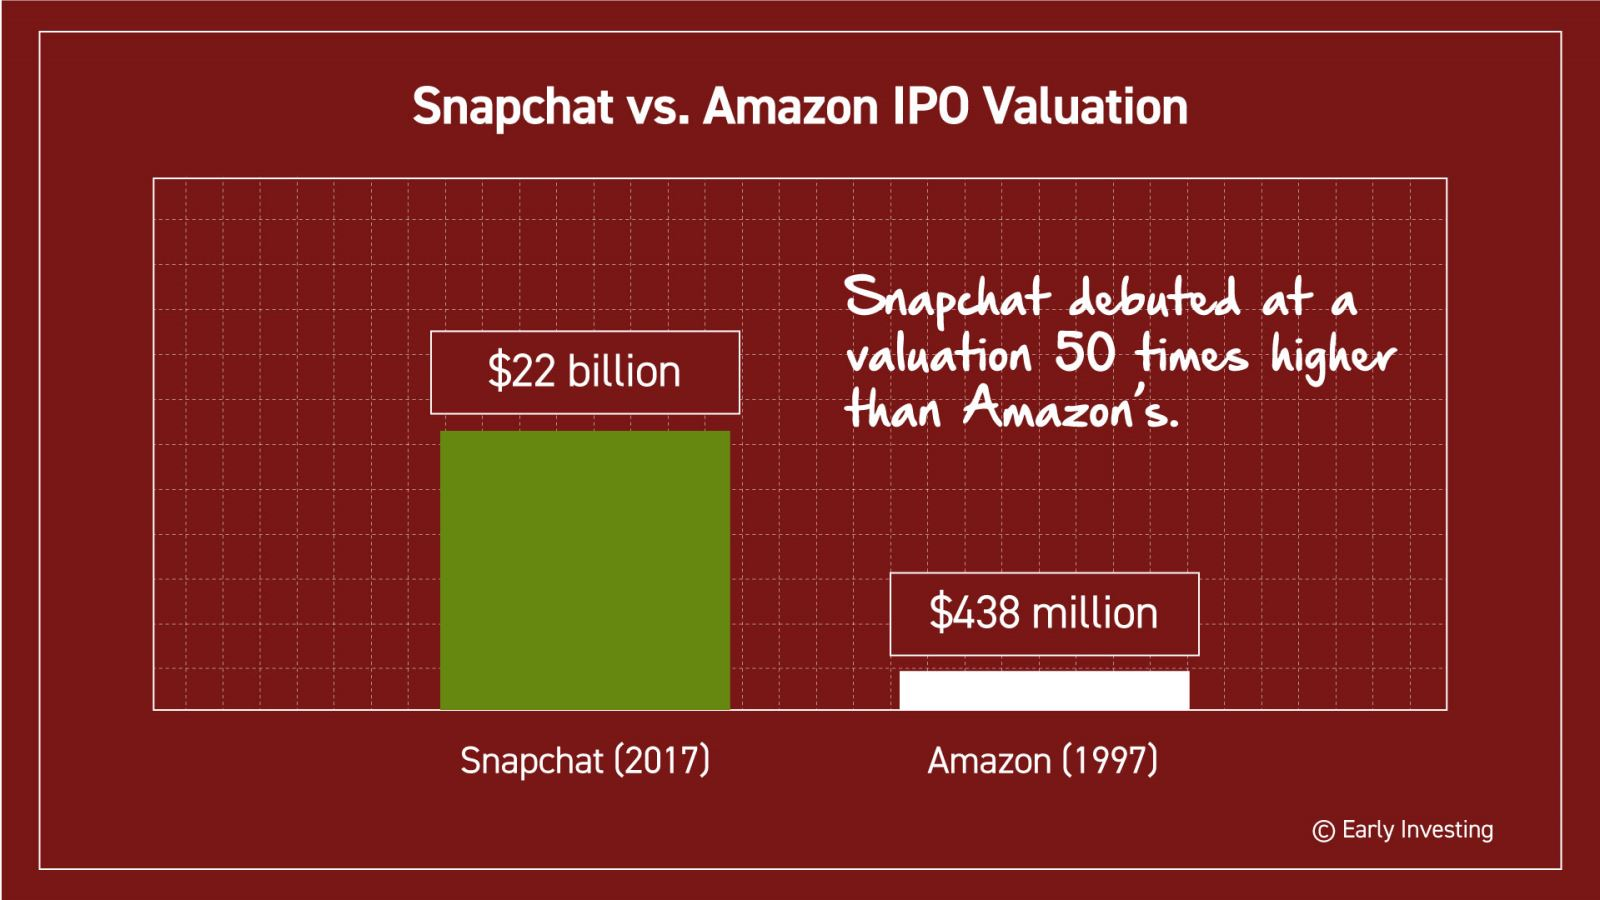 C16 snapchat apple1g and snapchat recently debuted at 22 billion a valuation 50 times higher than amazons image buycottarizona Image collections